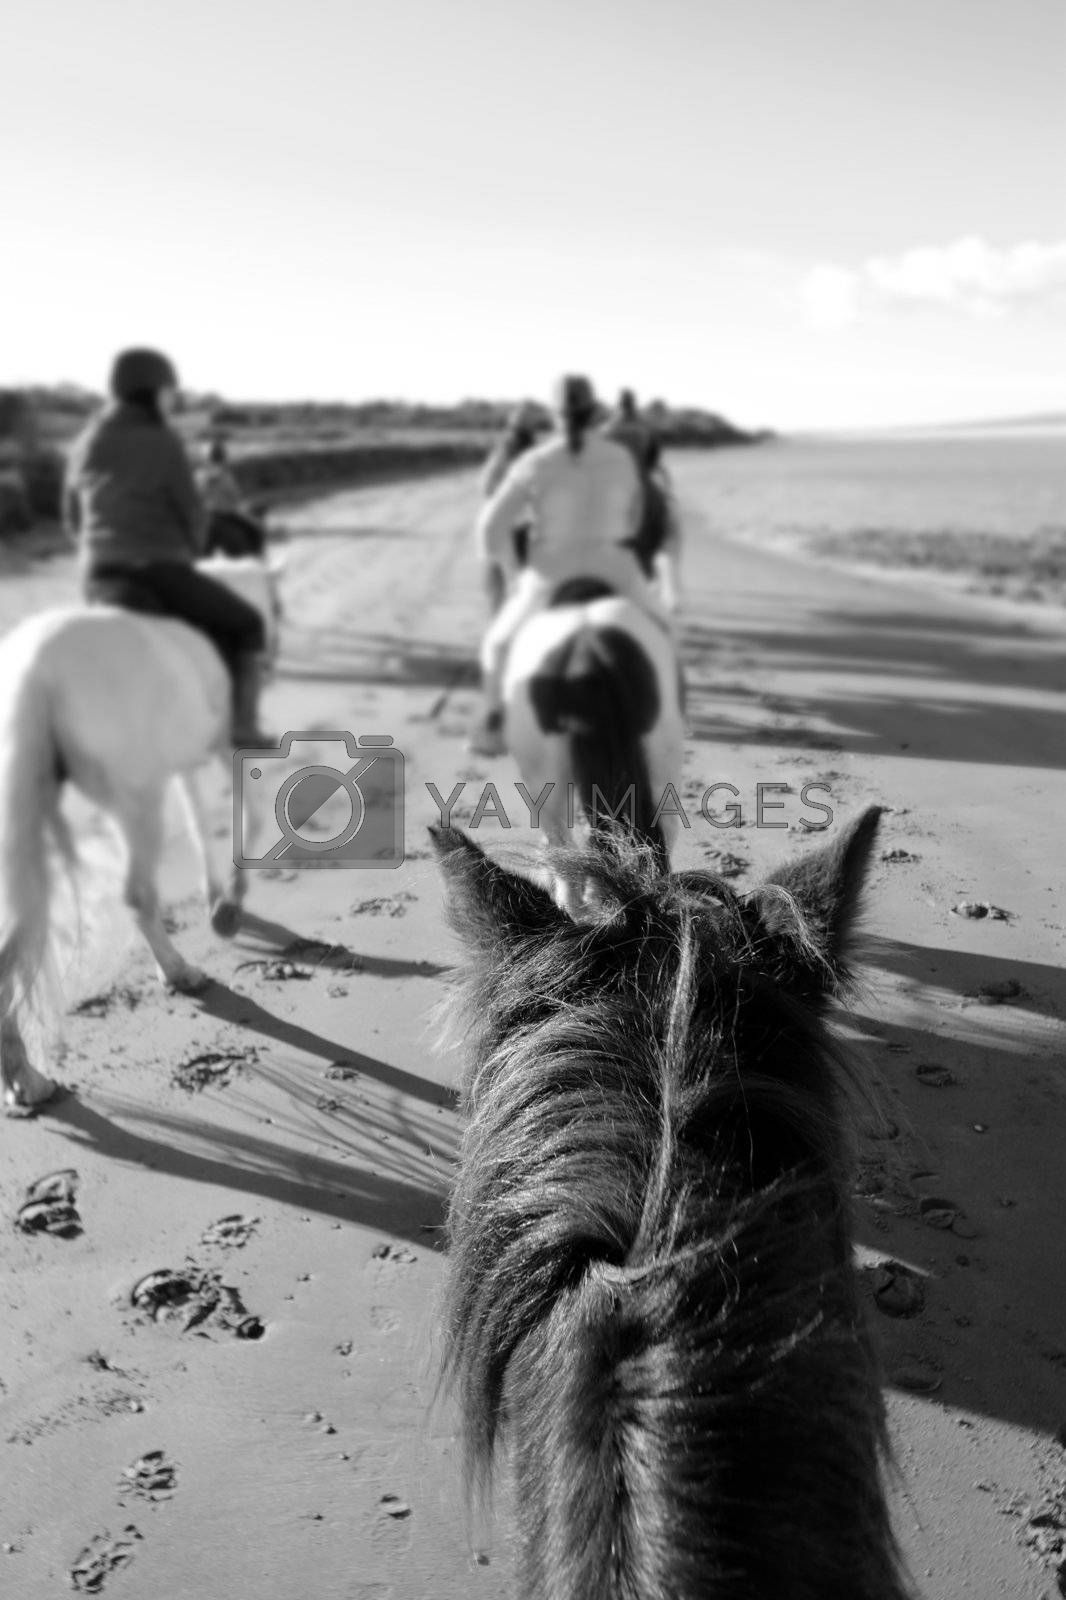 a riders view of a pony ride on a beautiful beach in county kerry ireland in black and white